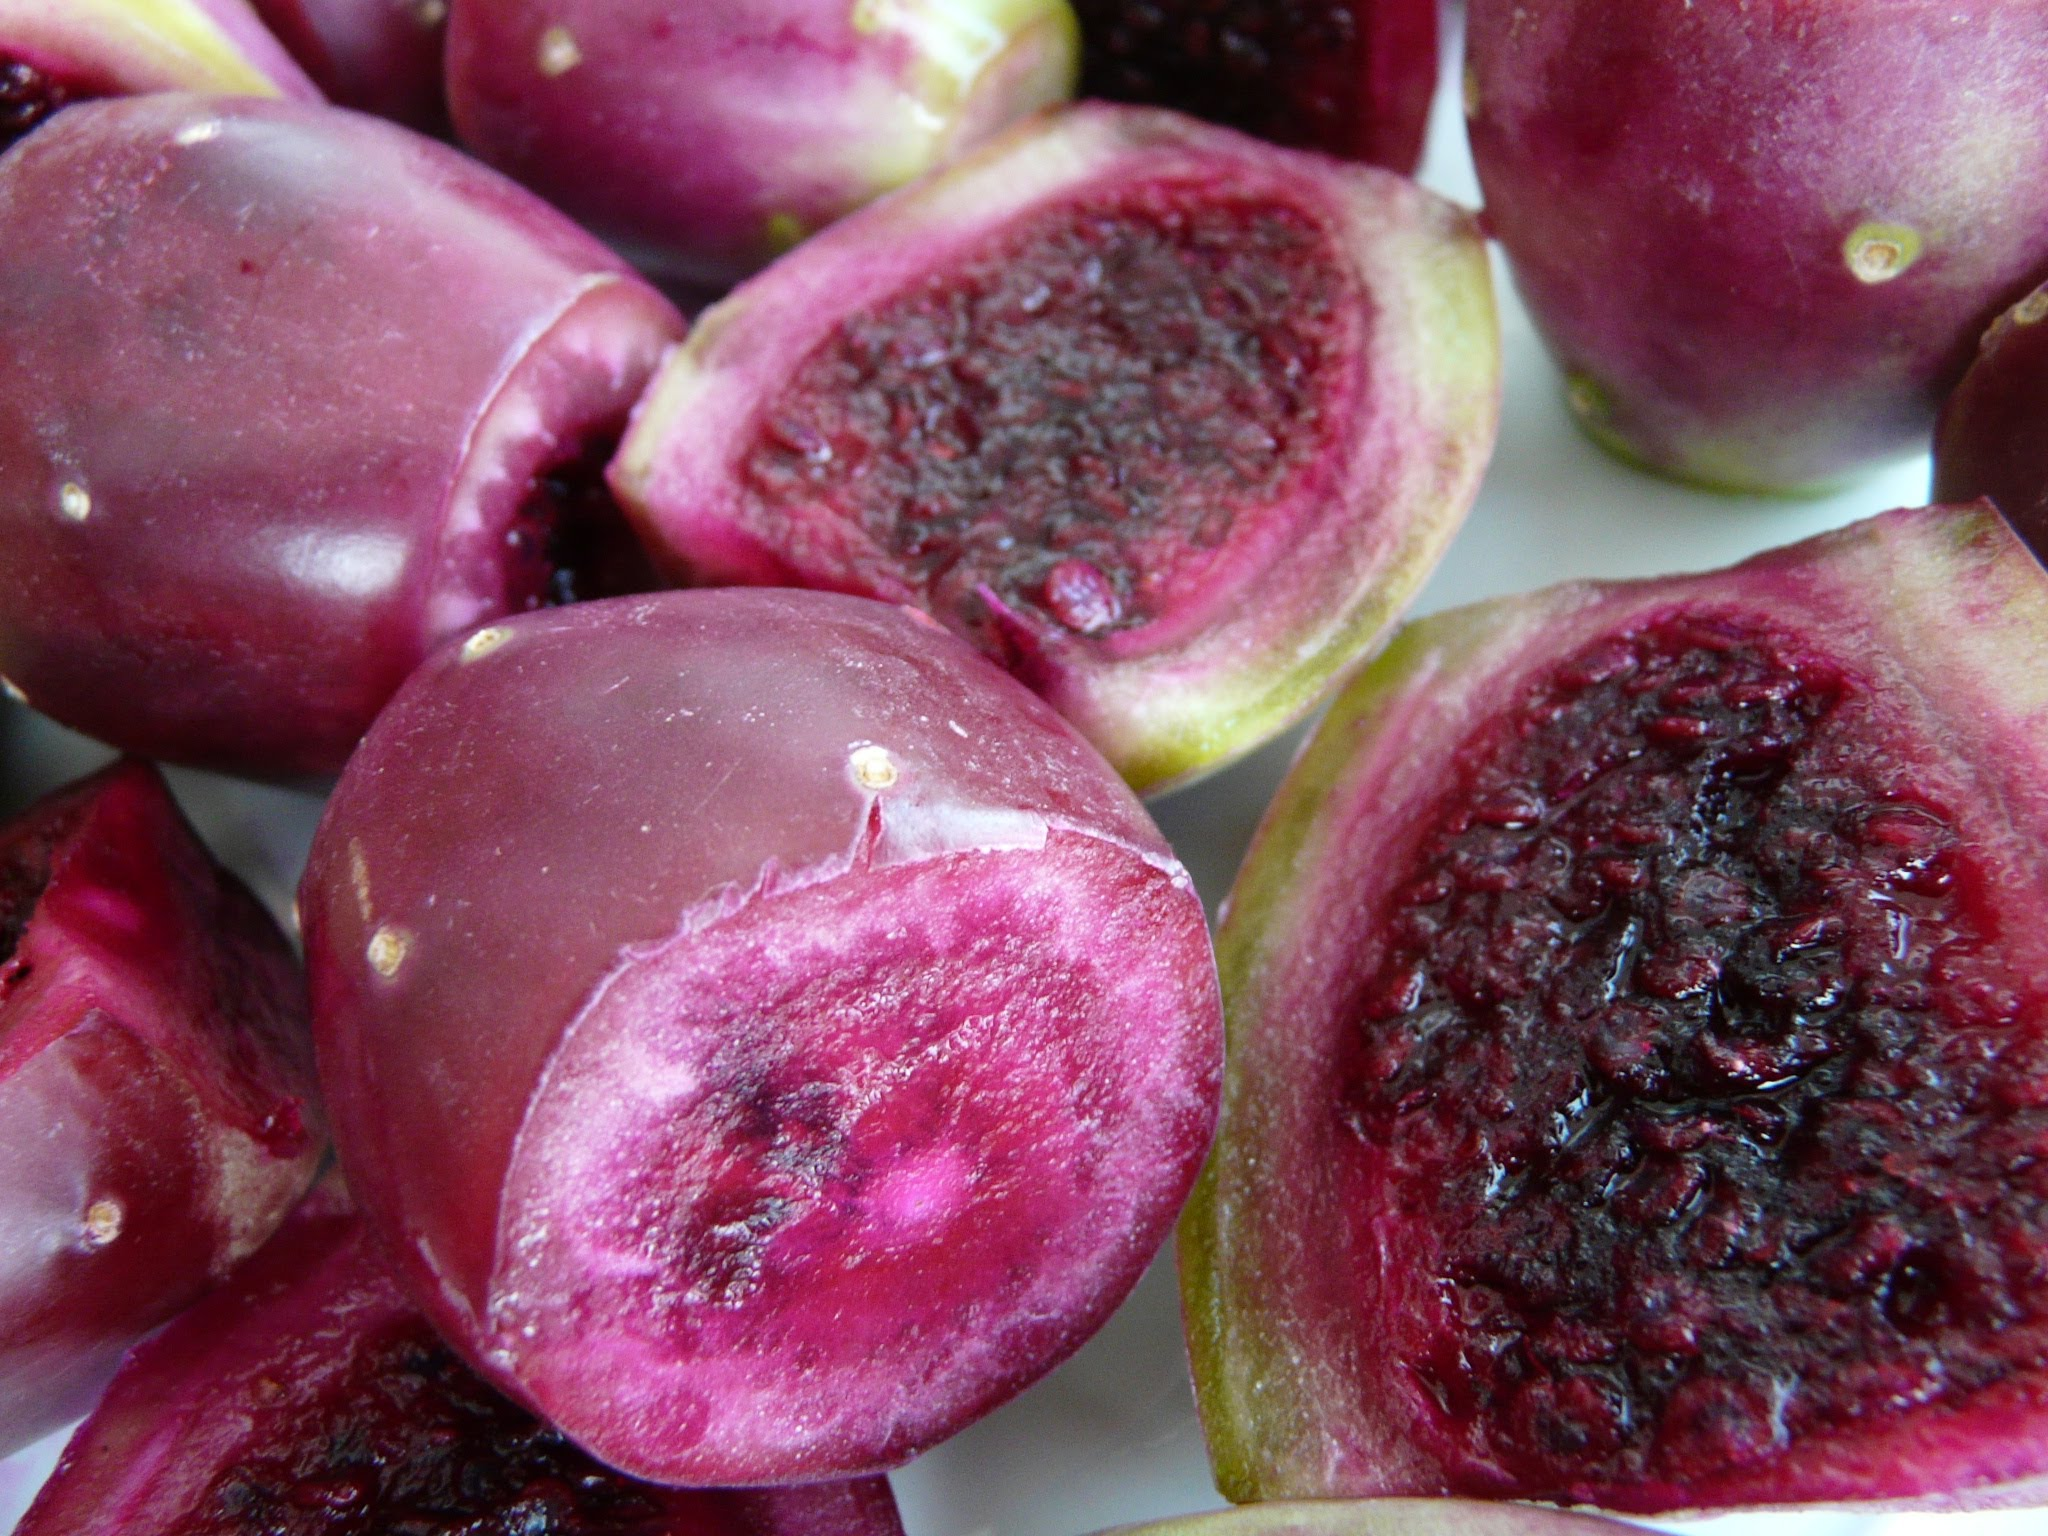 10. Prickly pear cactus fruits 2